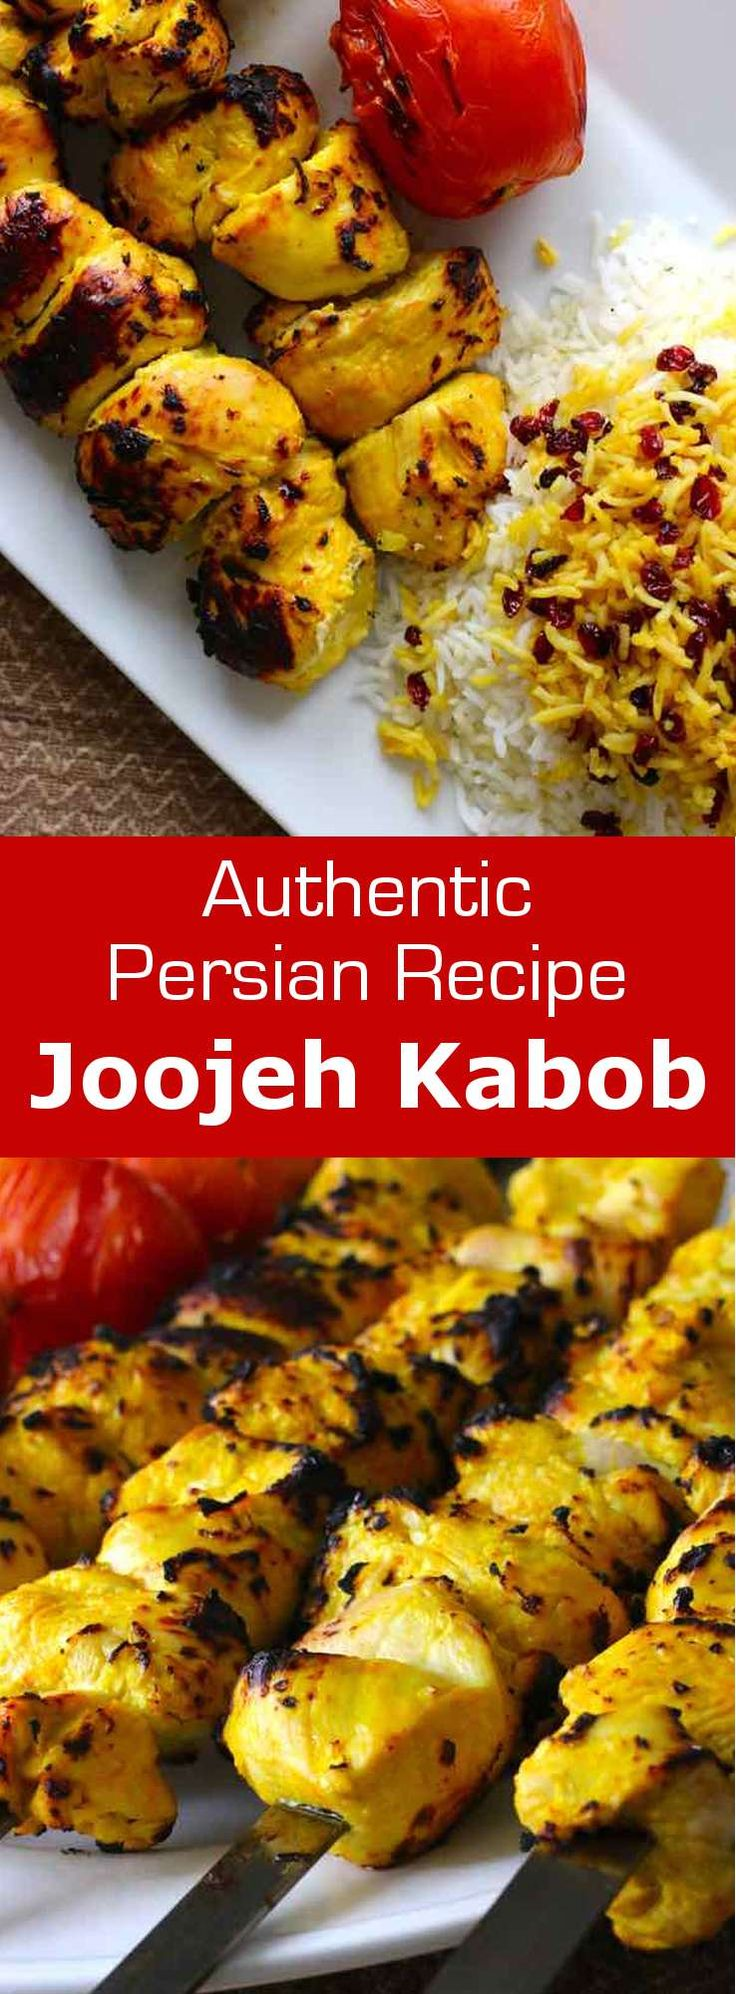 Joojeh kabob is a Persian kebab prepared with juicy pieces of chicken marinated in lemon juice as well as saffron and finely chopped onion.